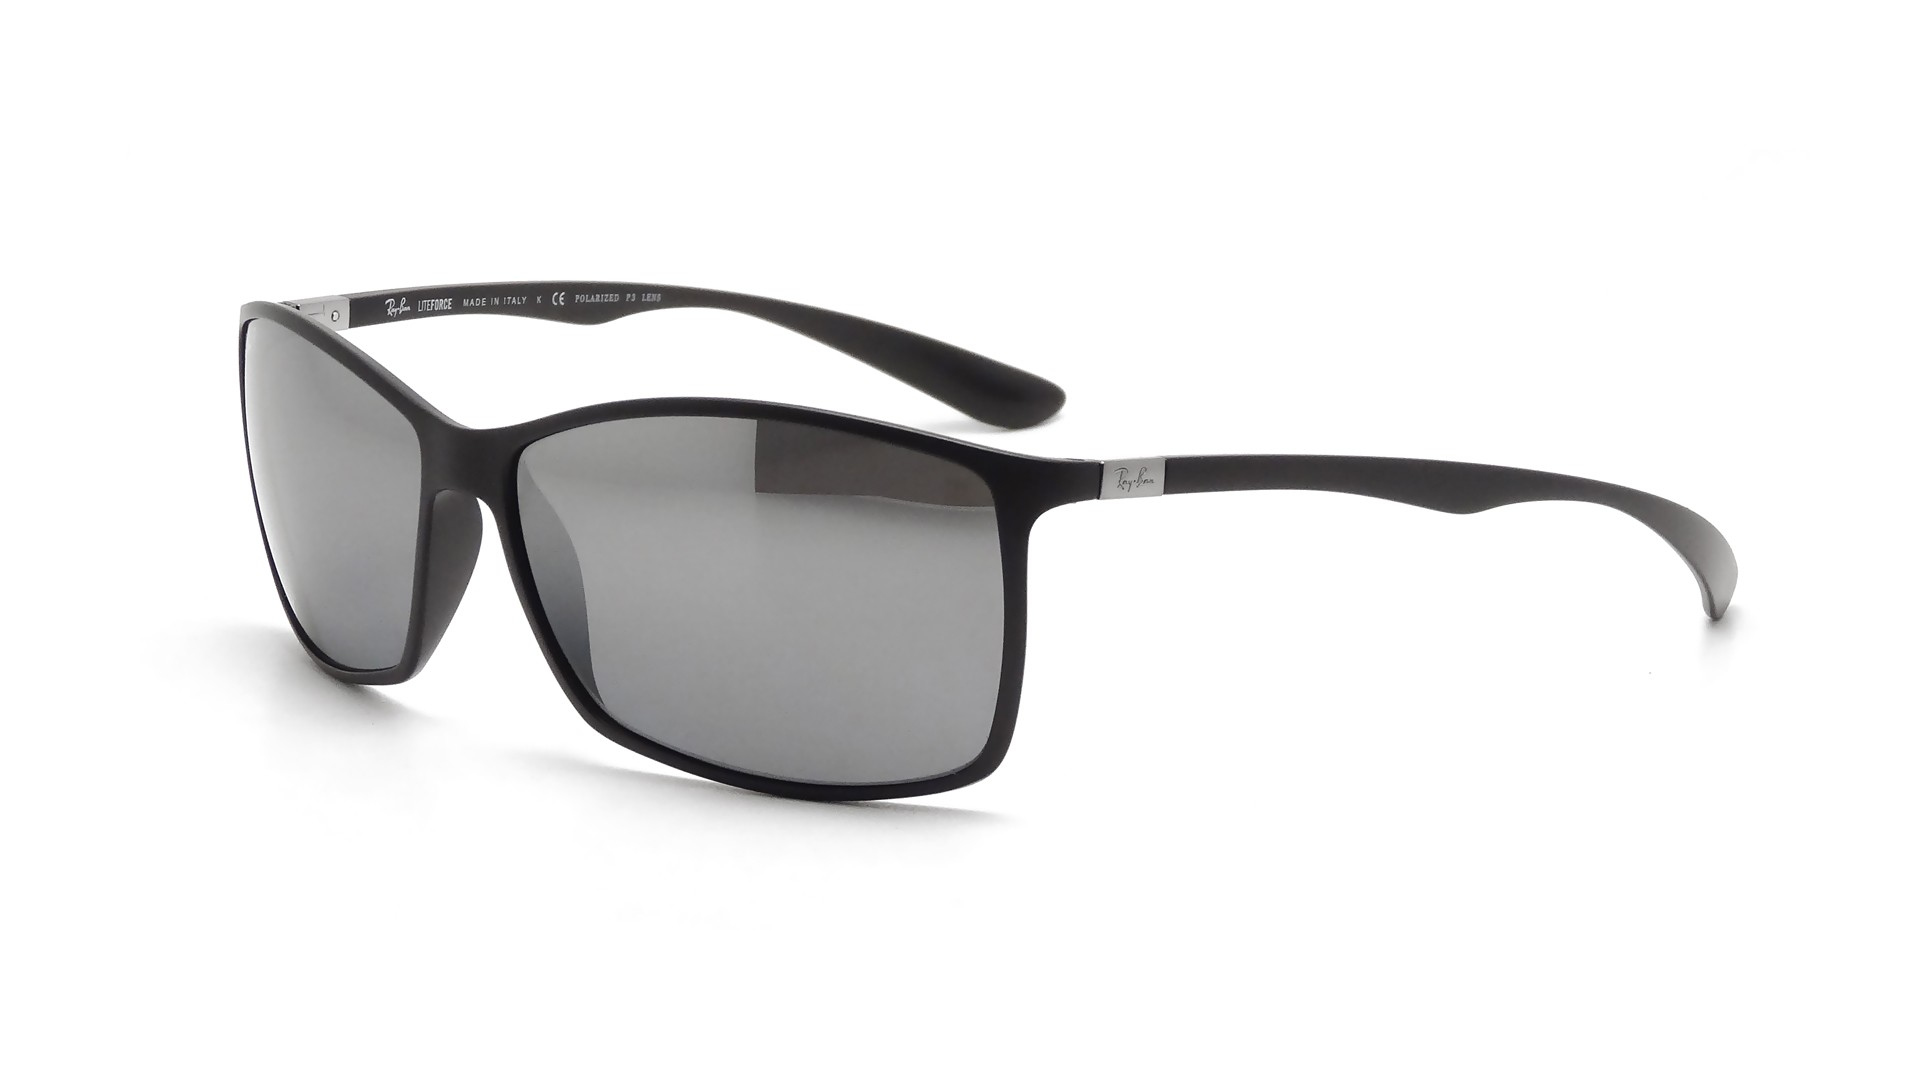 0b00876bbf2 Sunglasses Ray-Ban Tech Liteforce Black Matte RB4179 601S 82 62-15 Large  Polarized Mirror